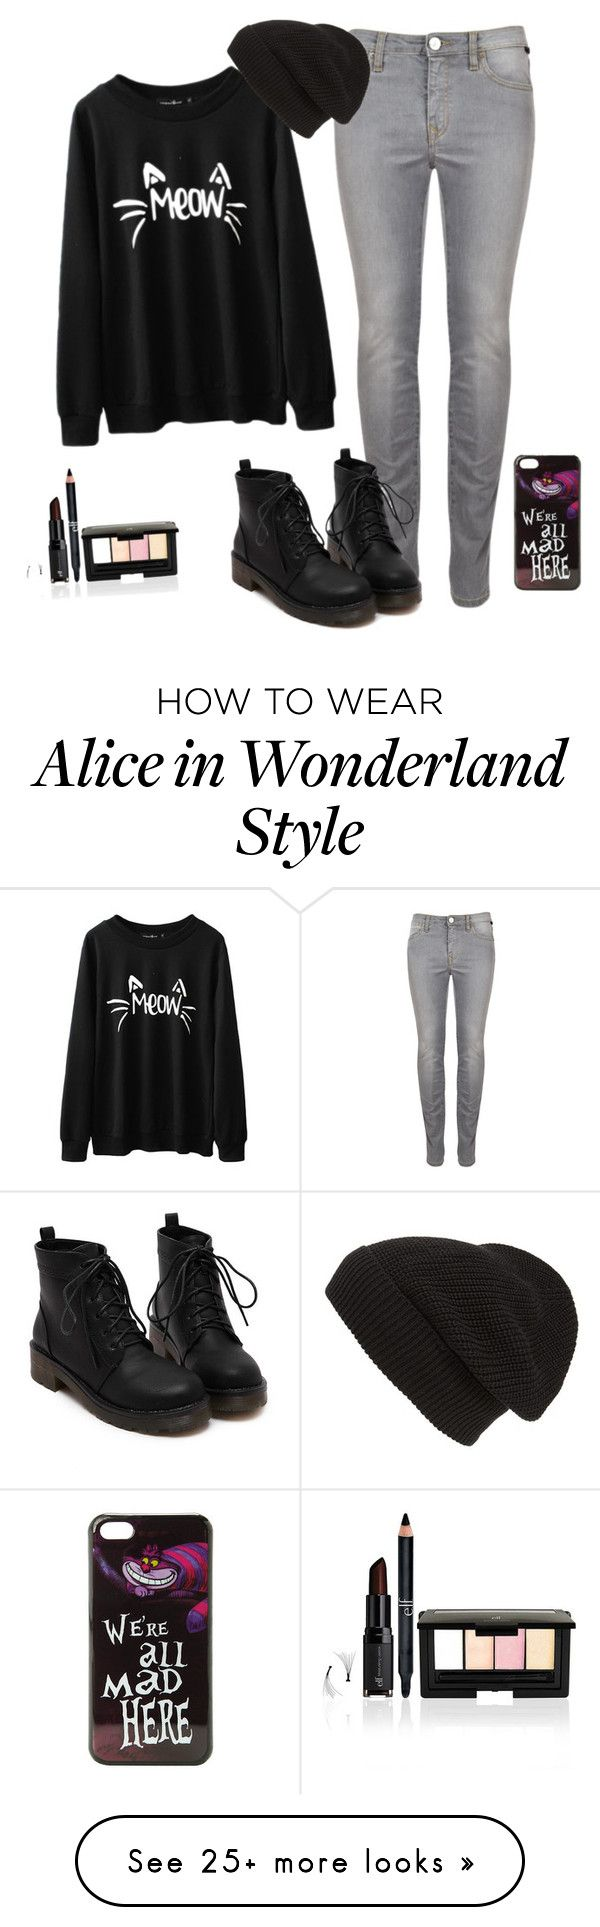 """""""cat"""" by ceciliapersson-1 on Polyvore featuring Phase 3 and Disney"""